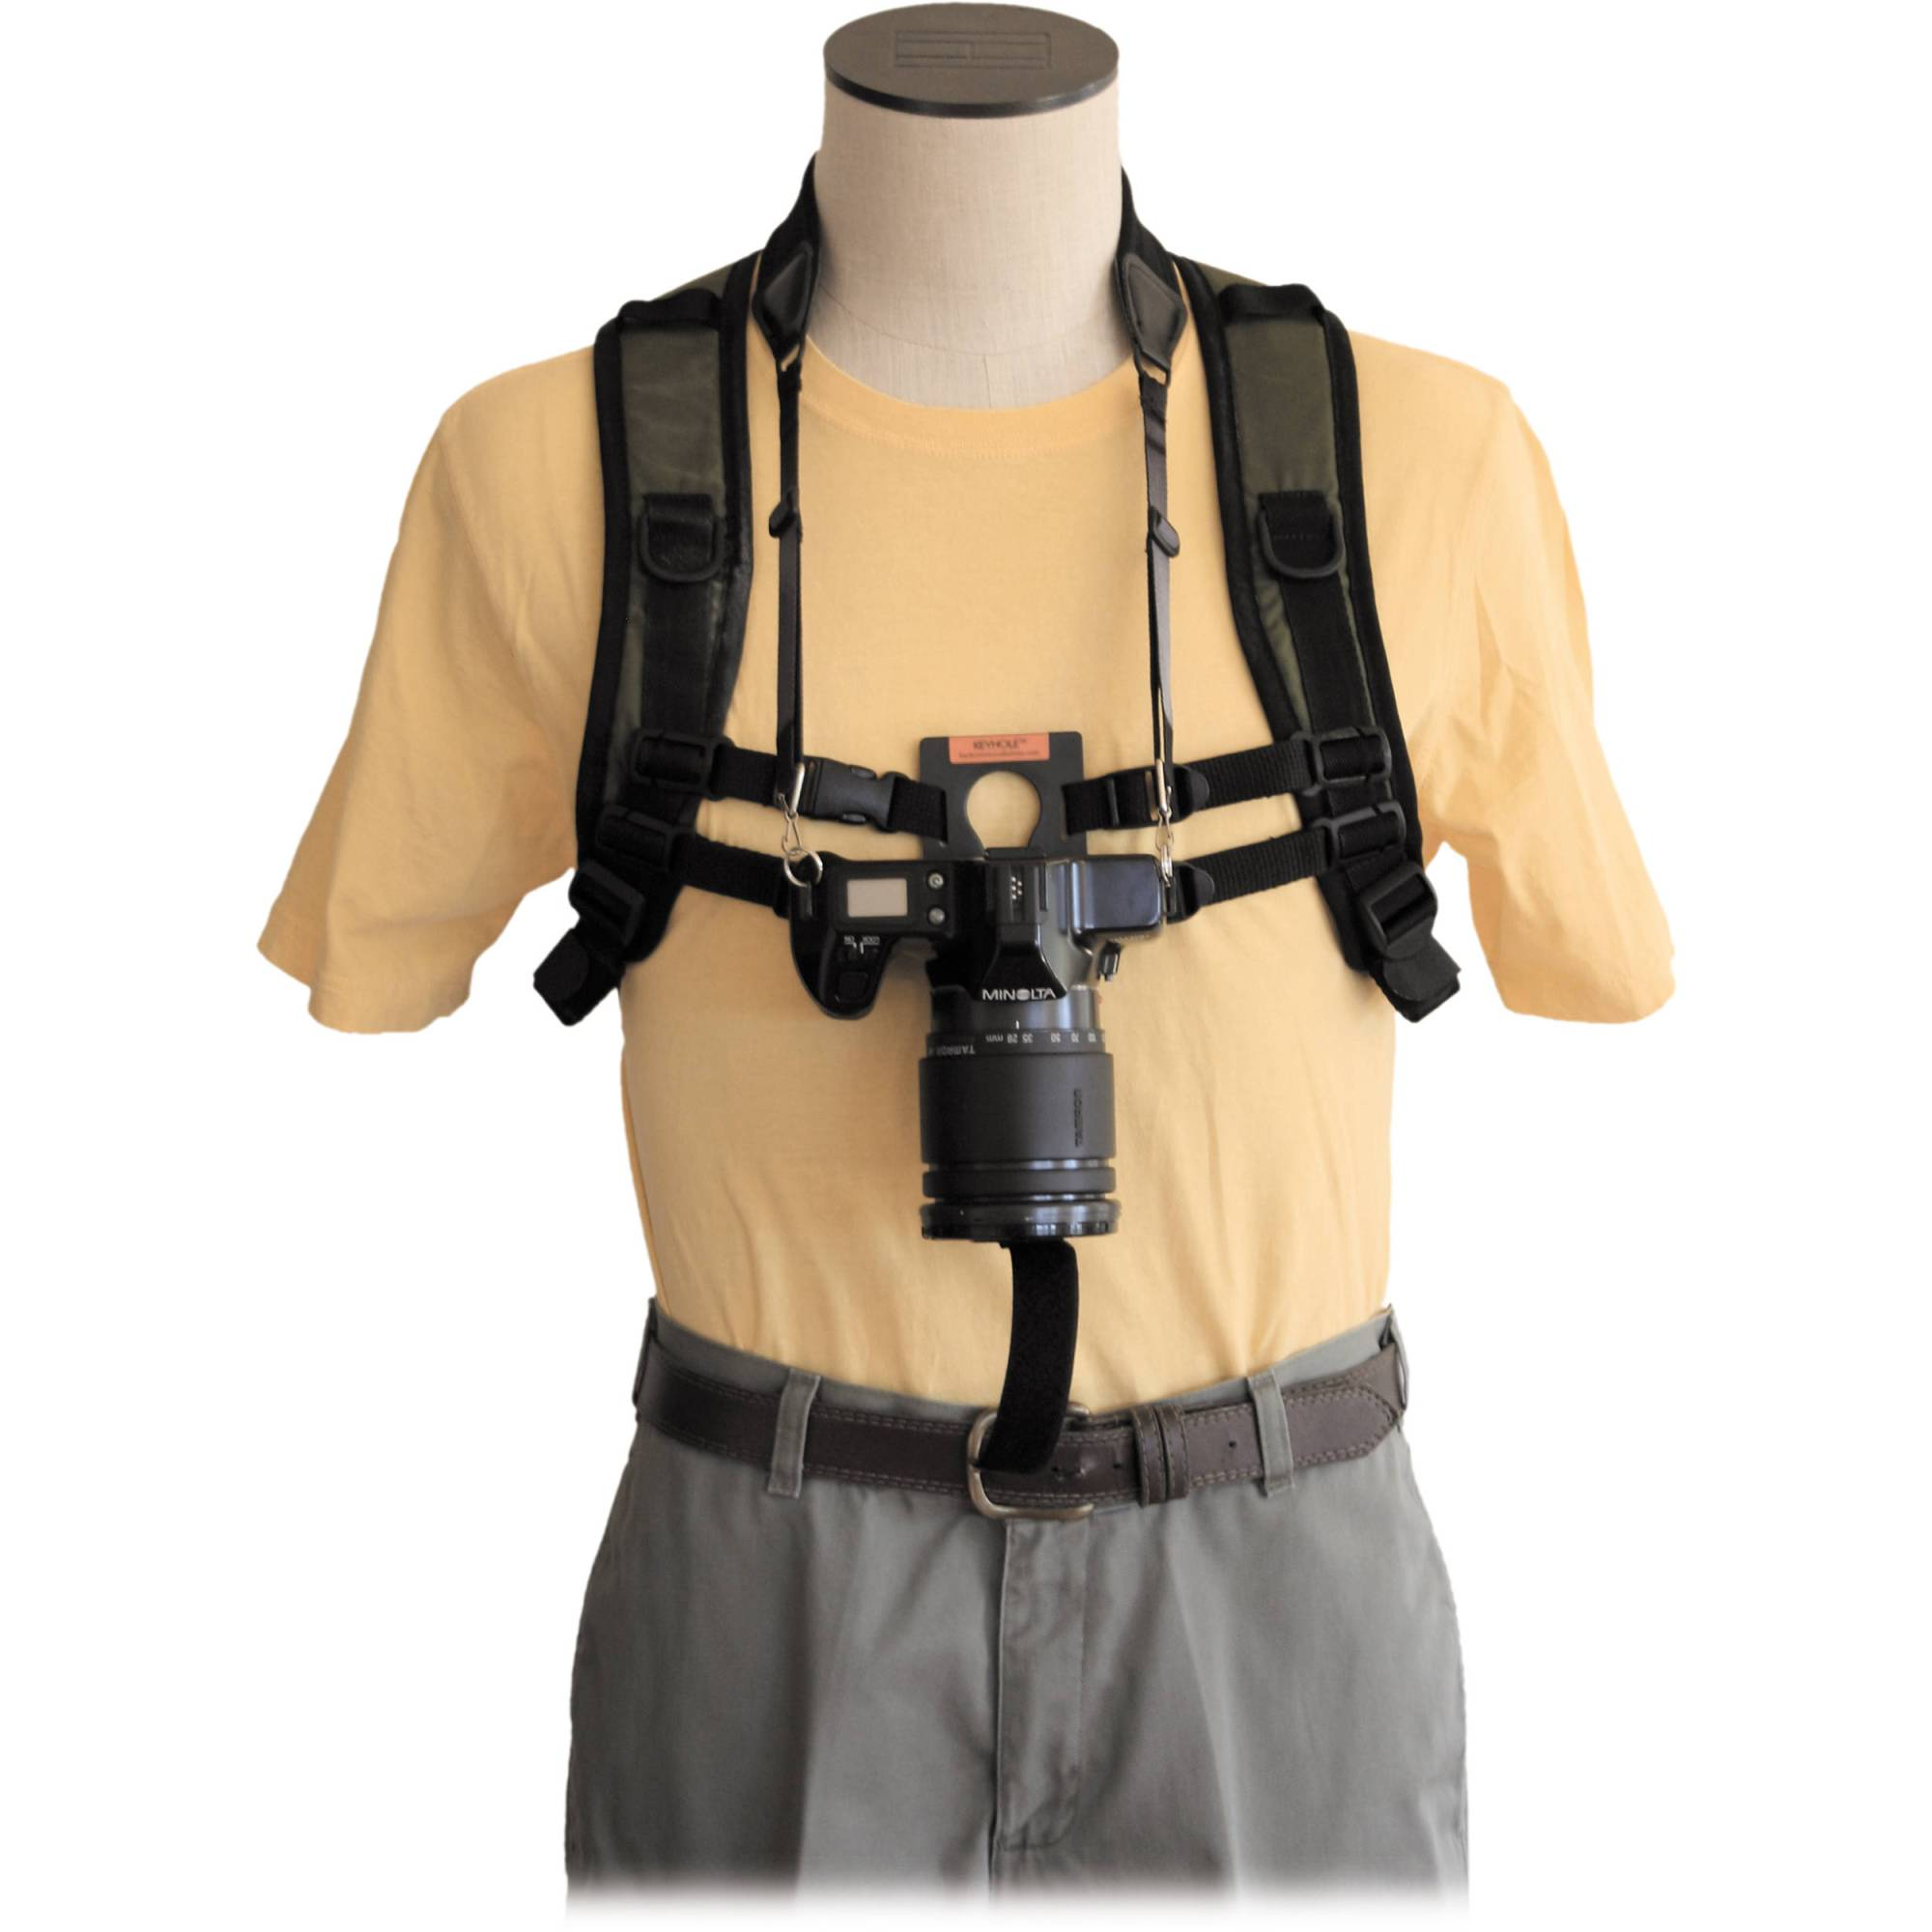 hight resolution of keyhole keyhole hands free camera harness black